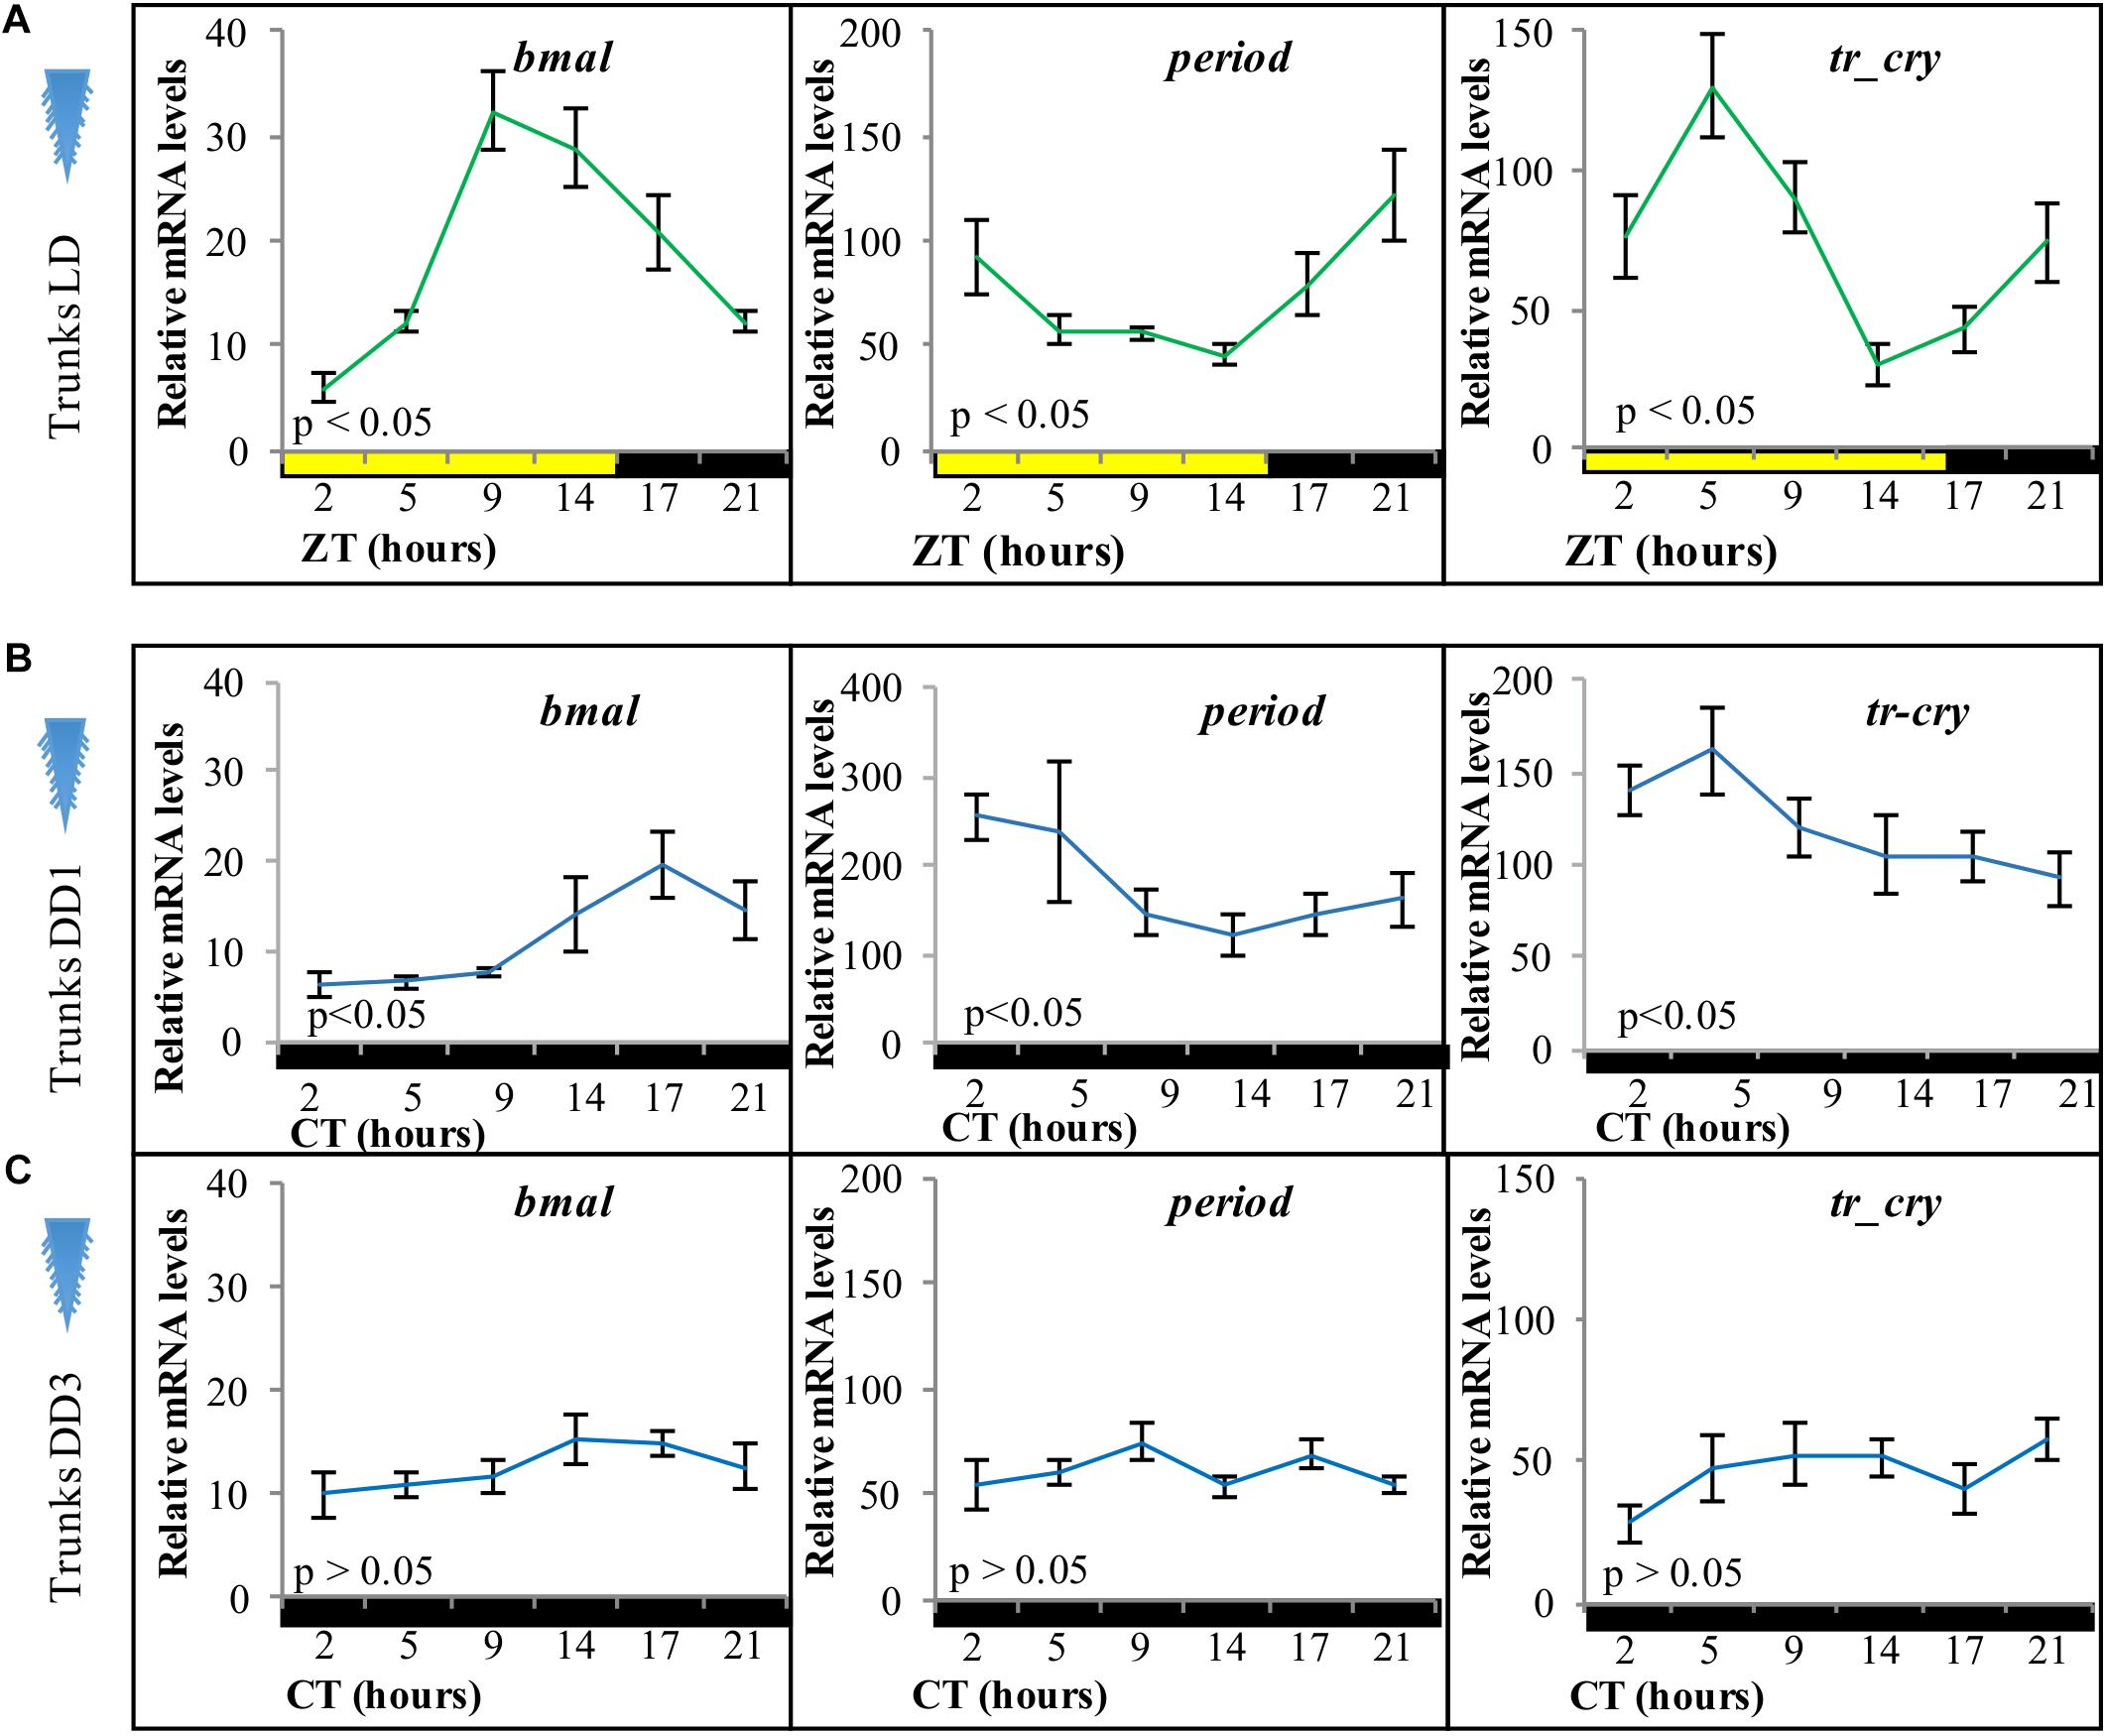 Frontiers | Differential Impacts of the Head on Platynereis